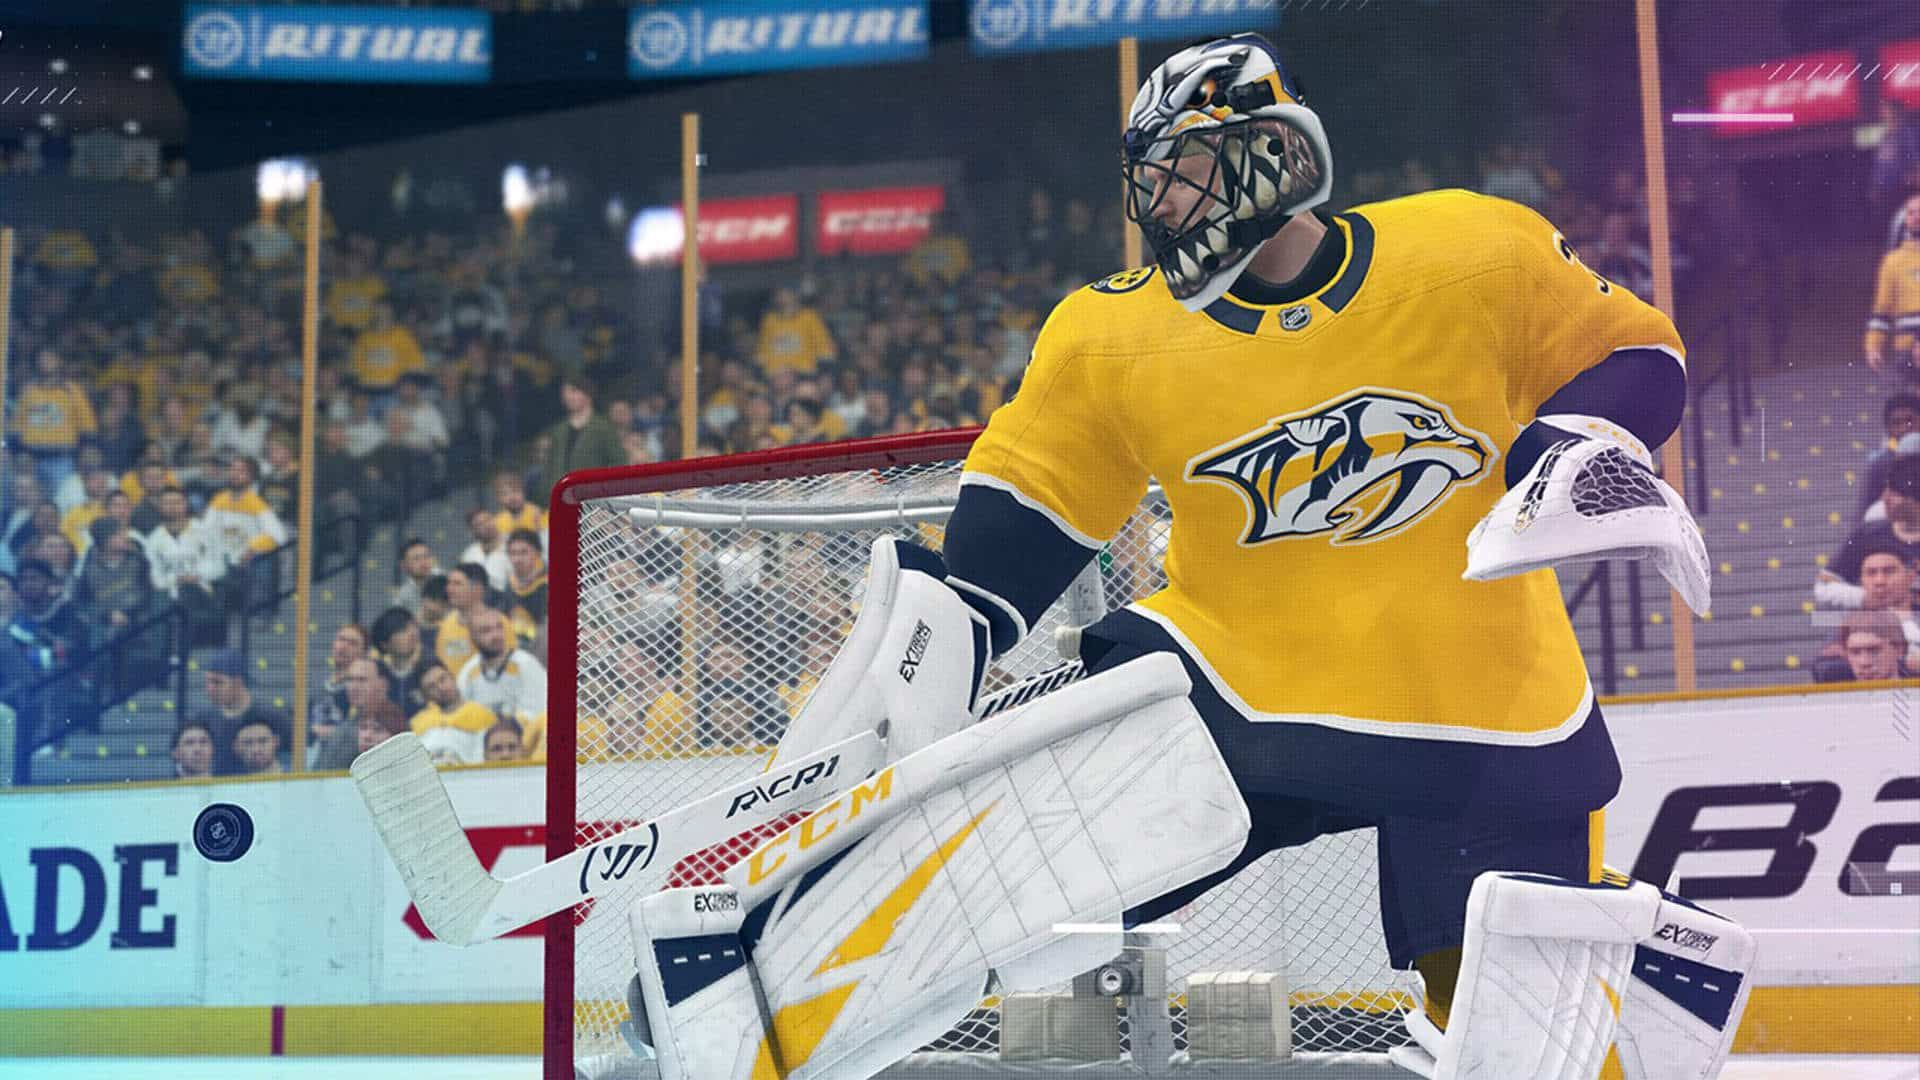 Nhl 21 Gets Patch To Fix Line Editing Issues Sports Gamers Online Nhl Nhl Season Gameplay